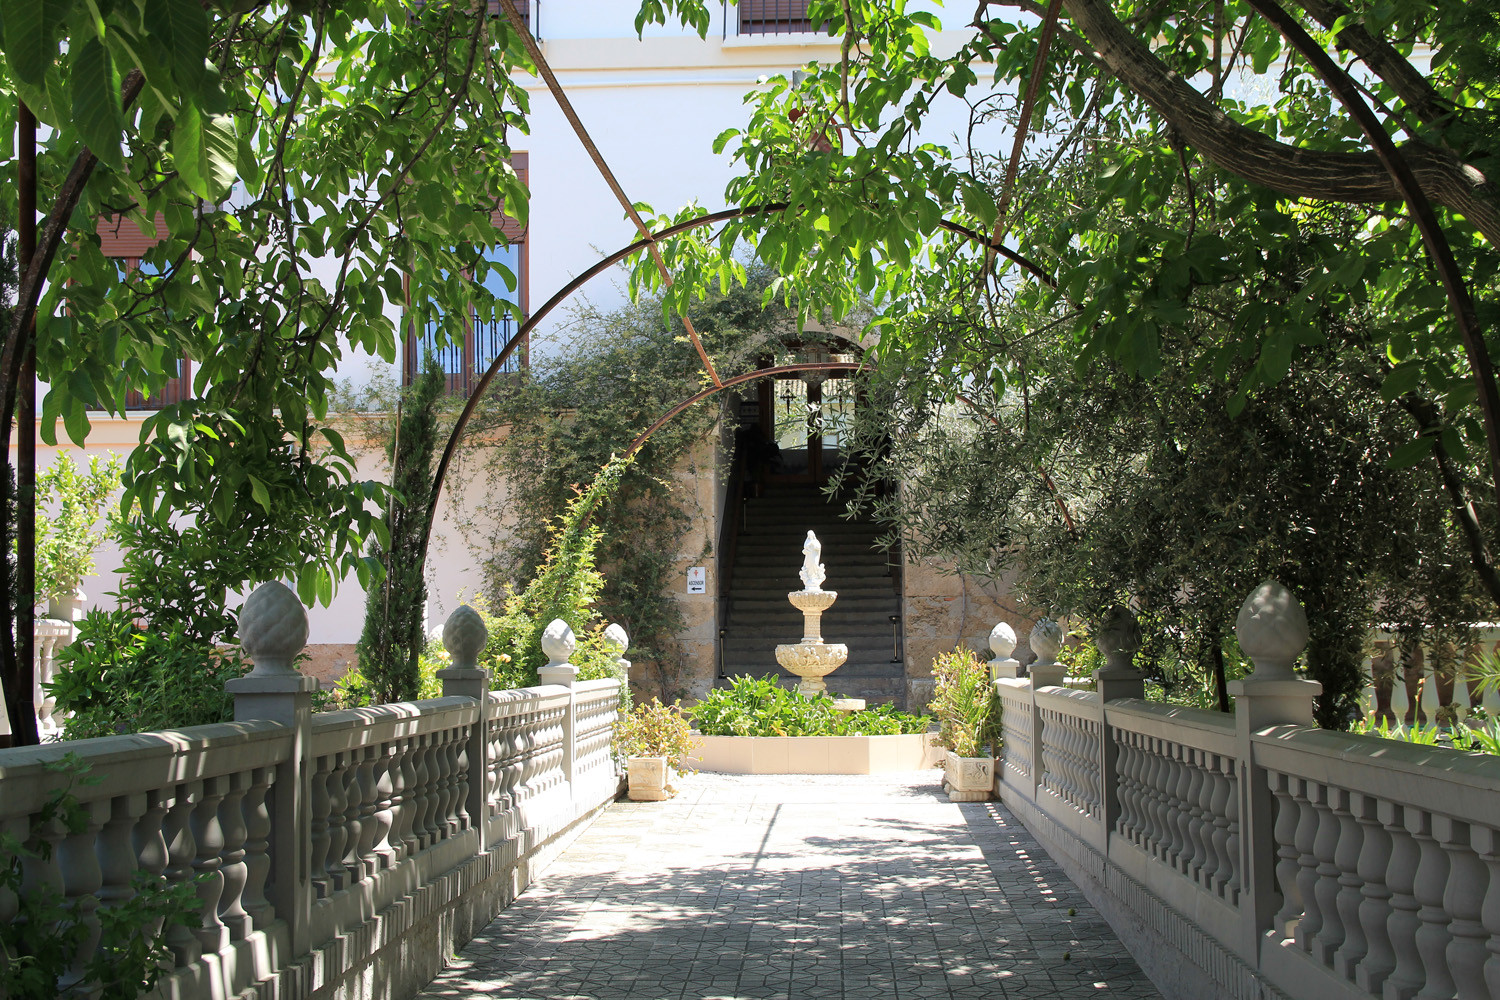 The entrance to  the convent